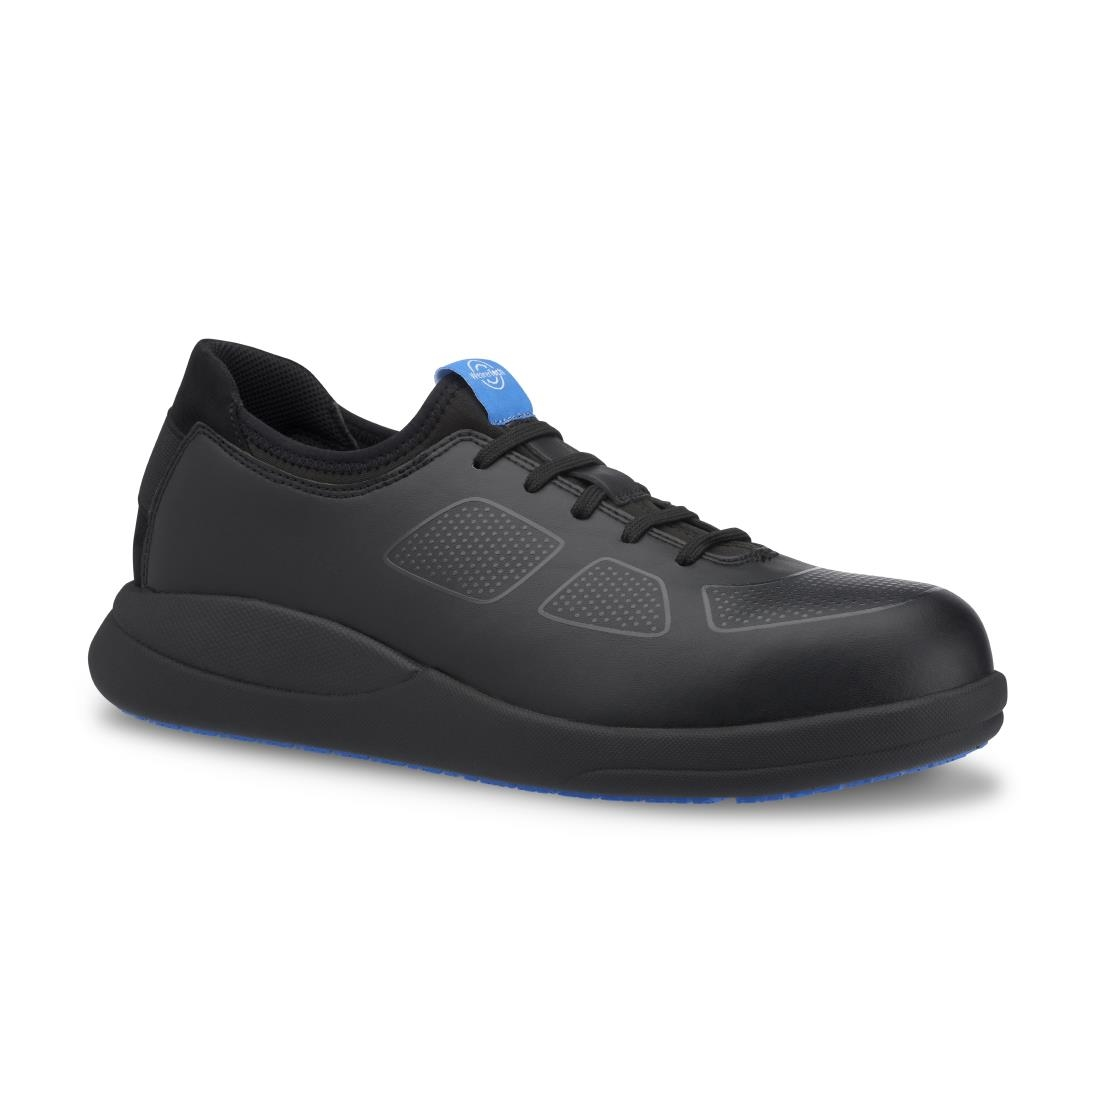 Wearertech Transform Safety Trainer Black With Soft Insole Size 46